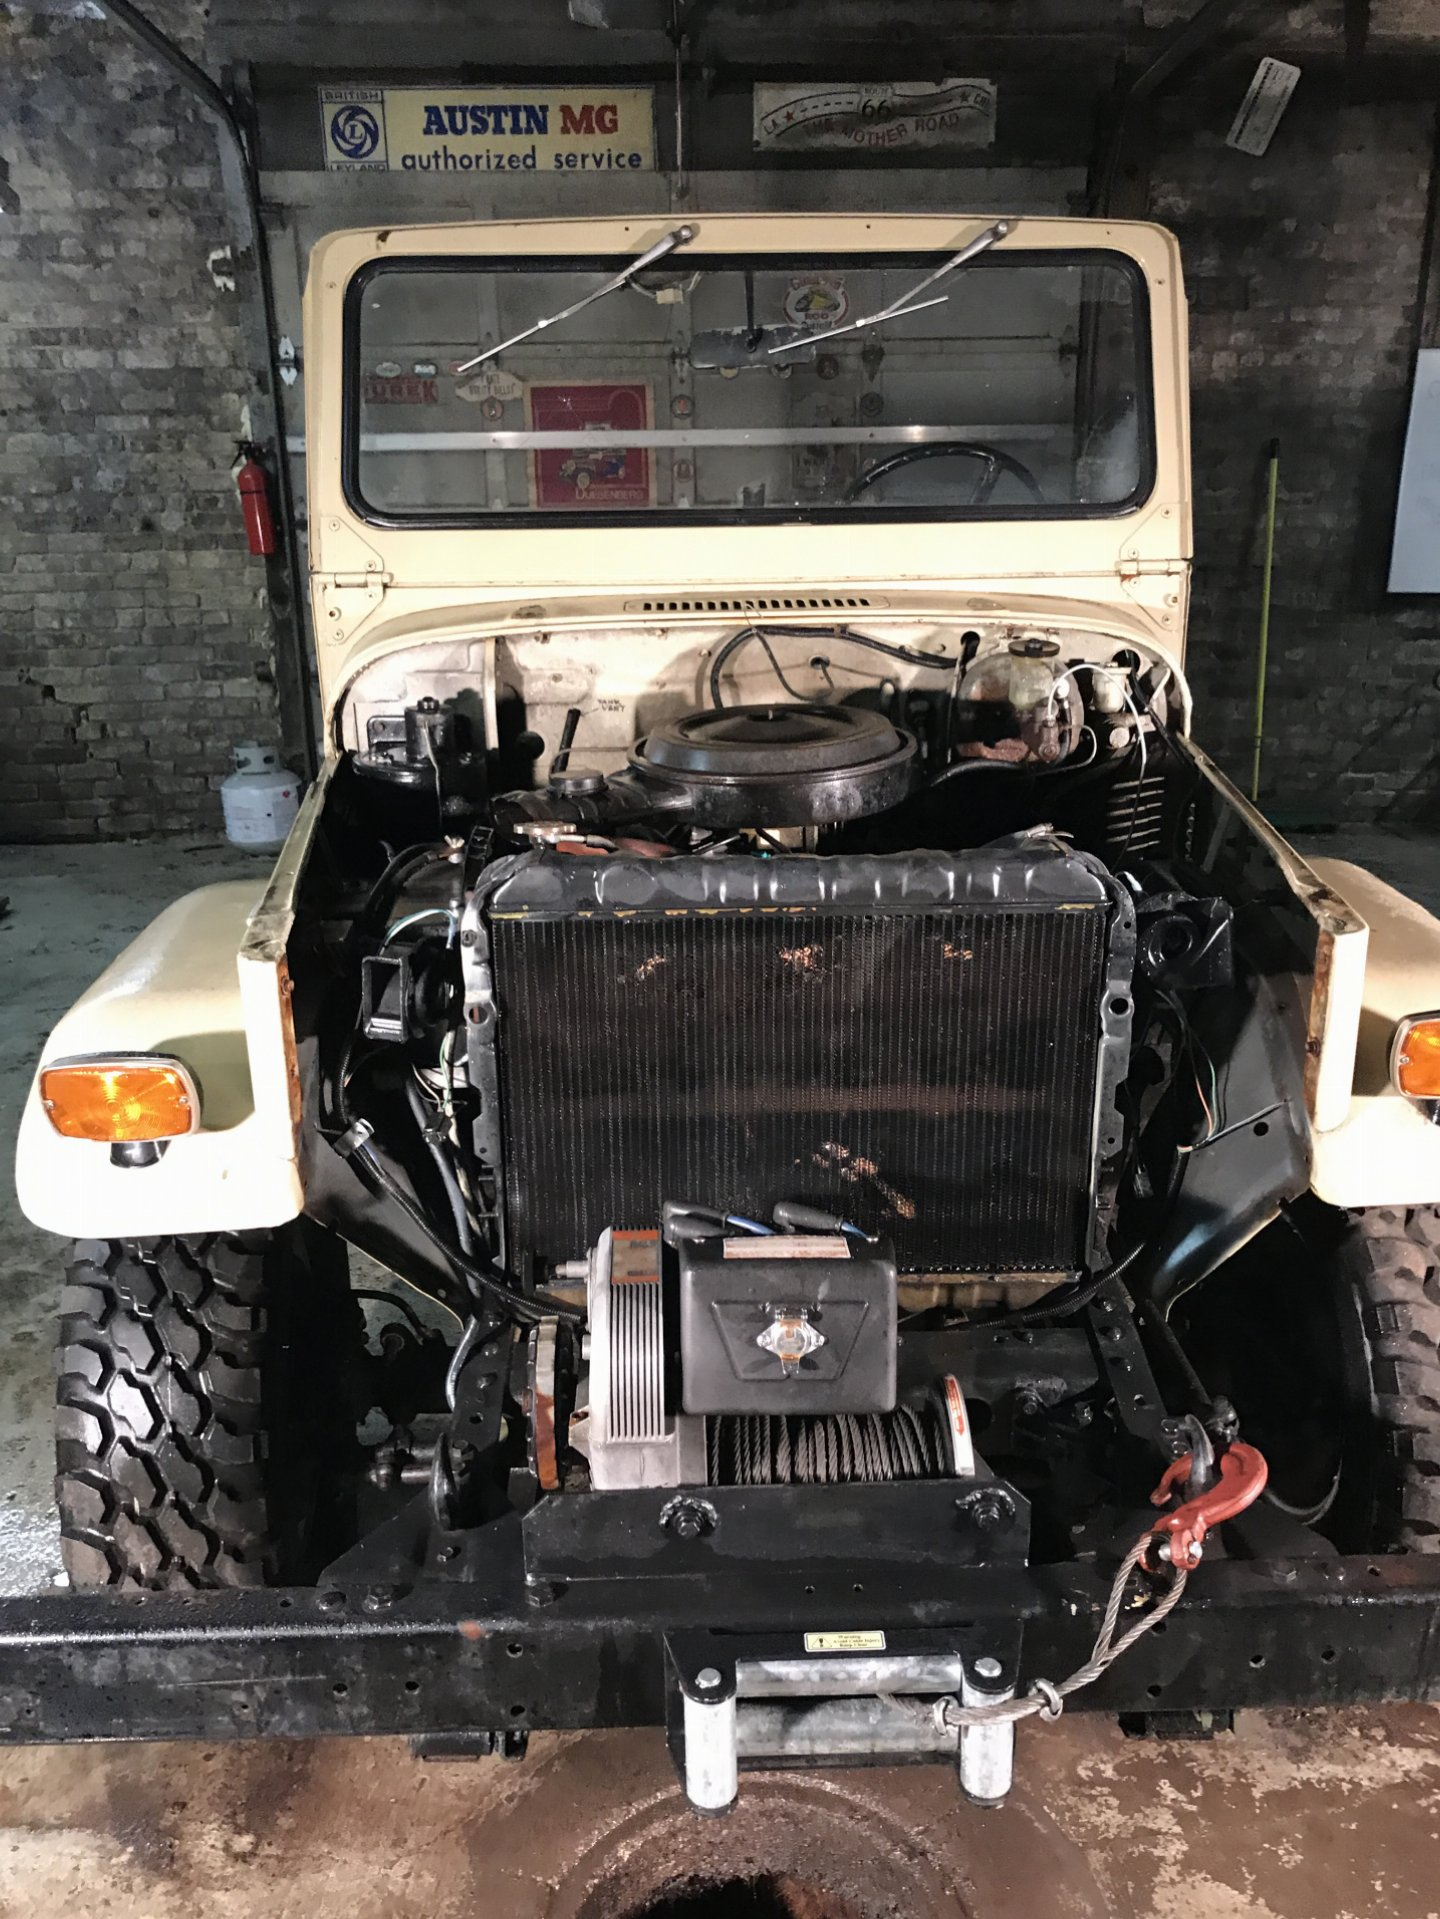 Painless Wiring Harness Toyota Fj40 Diagram For Sale Land Cruiser 1973 Project Ih8mud Forum I Have Other Pictures And Can Answer Any Questions About The At